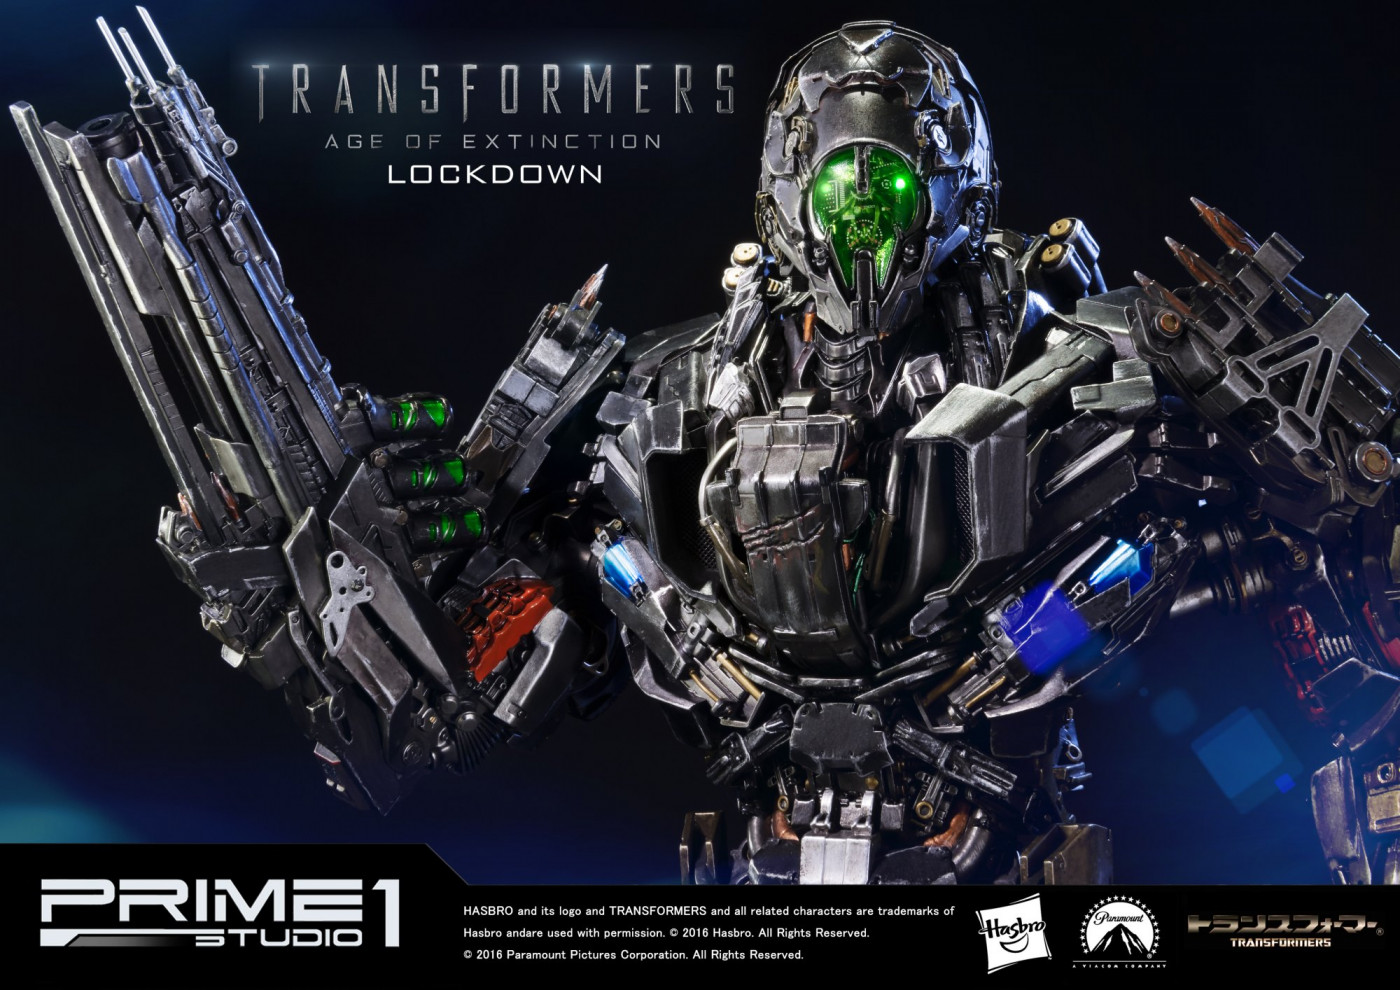 Museum Masterline Transformers: Age of Extinction Lockdown EX Version